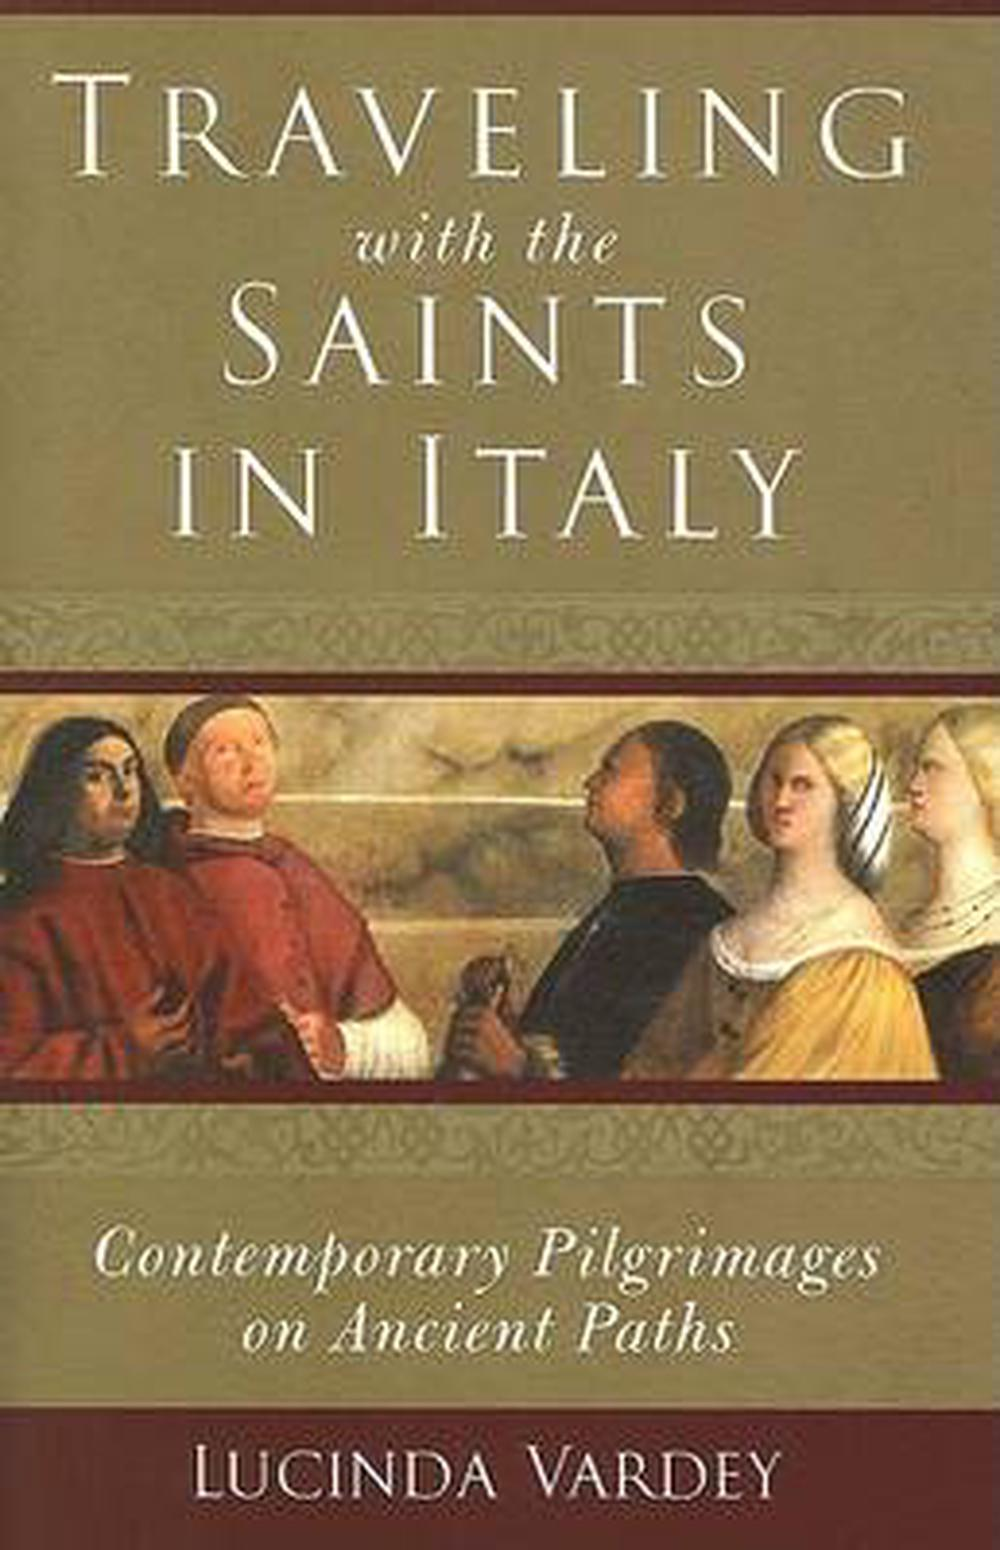 Traveling with the Saints in Italy: Contemporary Pilgrimages on Ancient Paths by Lucinda Vardey, ISBN: 9781587680243